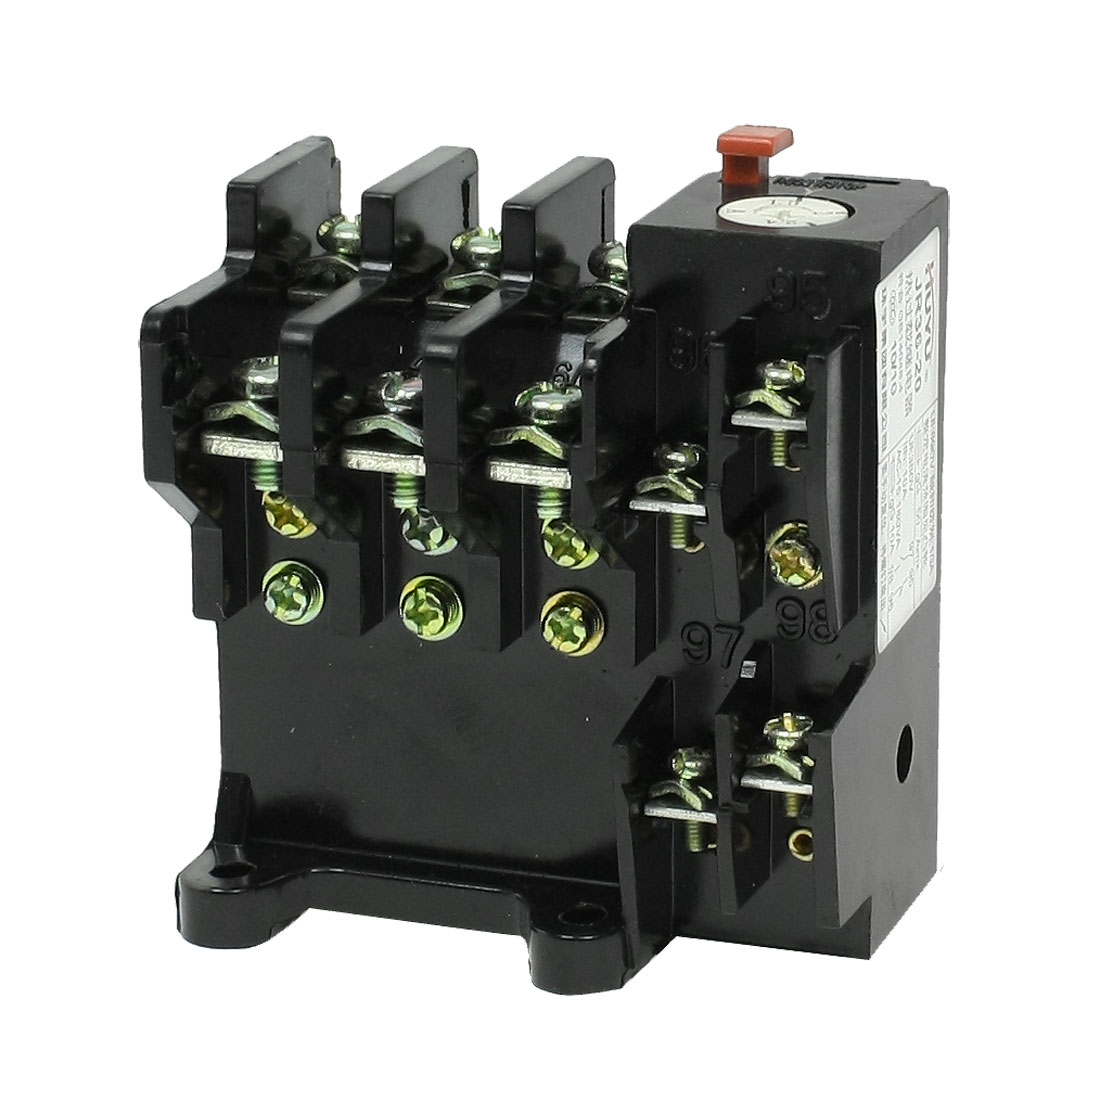 JR36-20 3 Phase 1NO 1NC 1.5-2.4A Range Electric Thermal Overload Relay